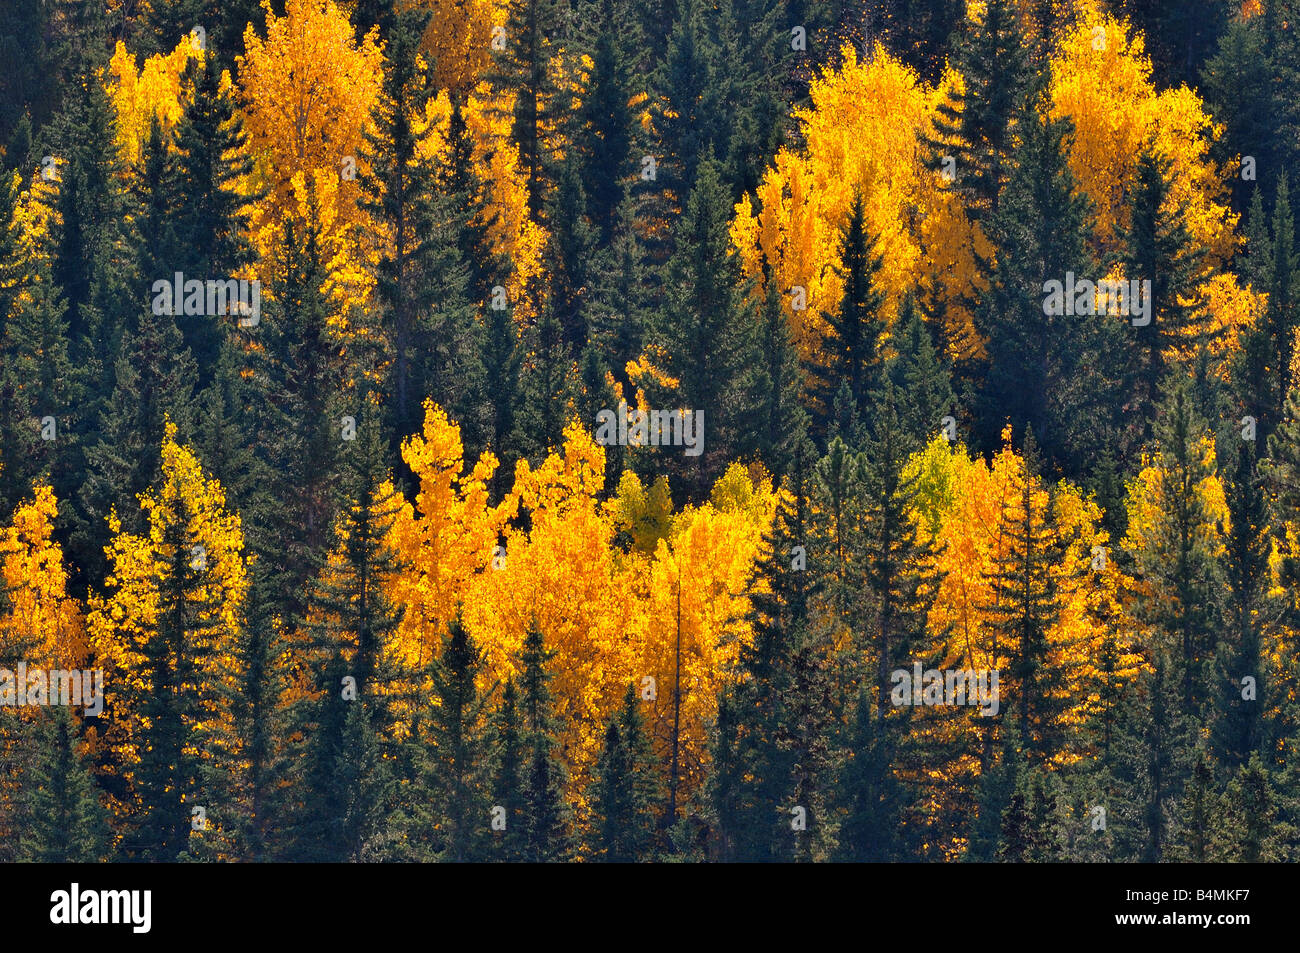 Mixed forest 0802 - Stock Image